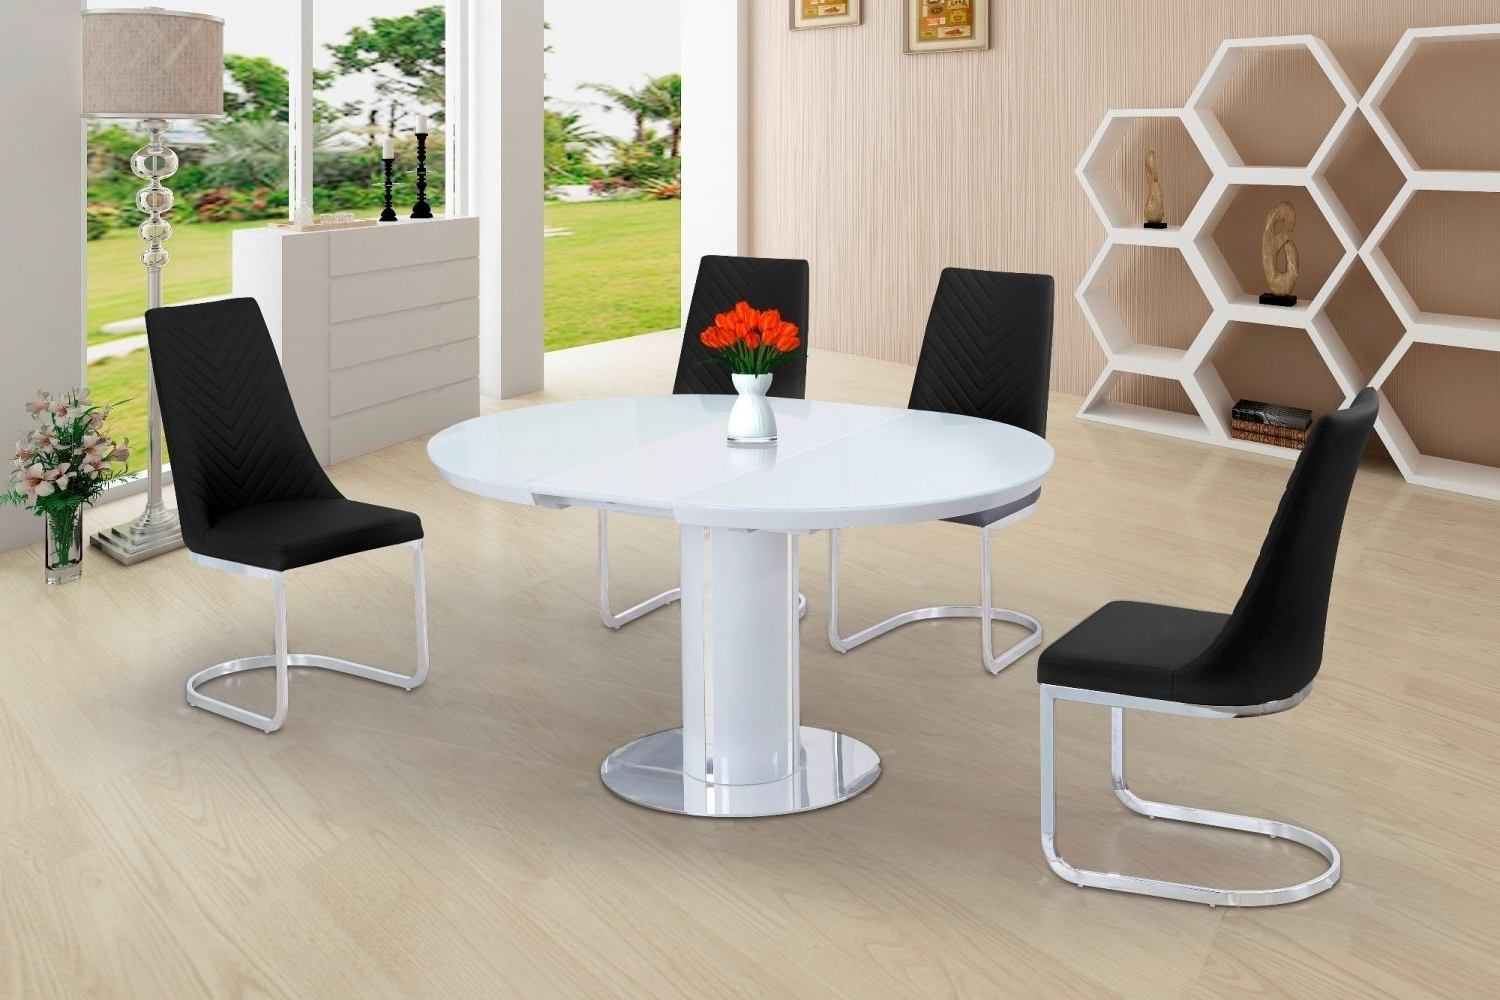 White Gloss Extending Dining Tables For Most Up To Date Buy Space Saving White Gloss Extending Round Dining Table (View 20 of 25)